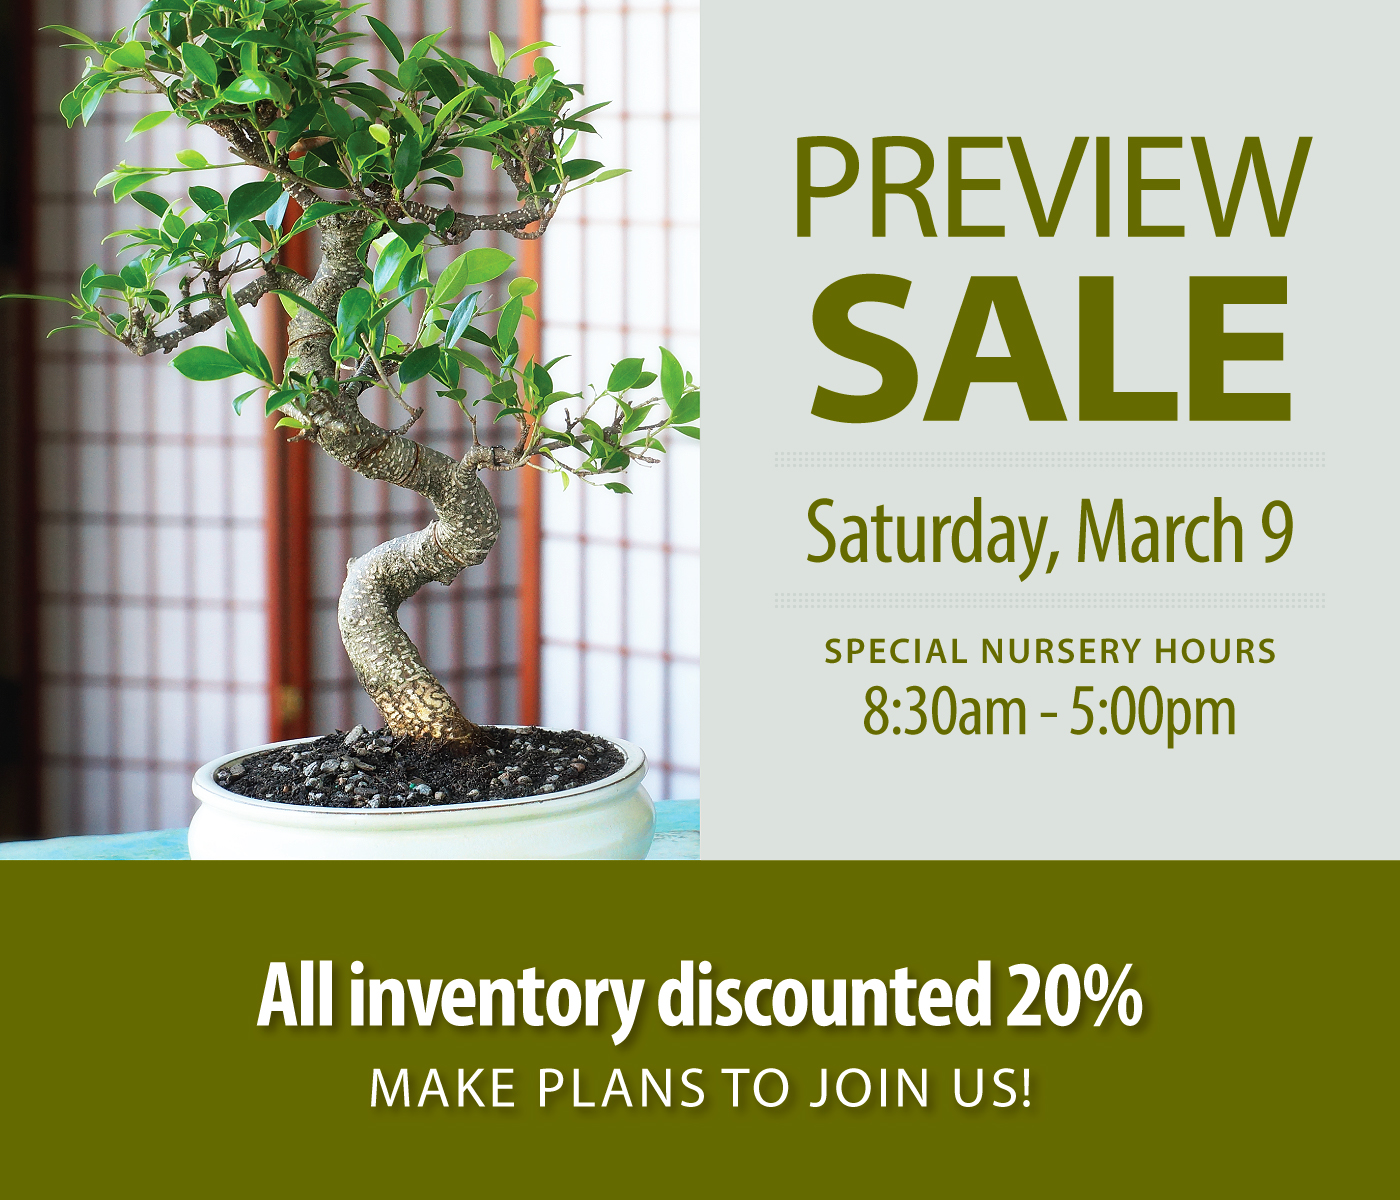 preview-sale-2019.jpg